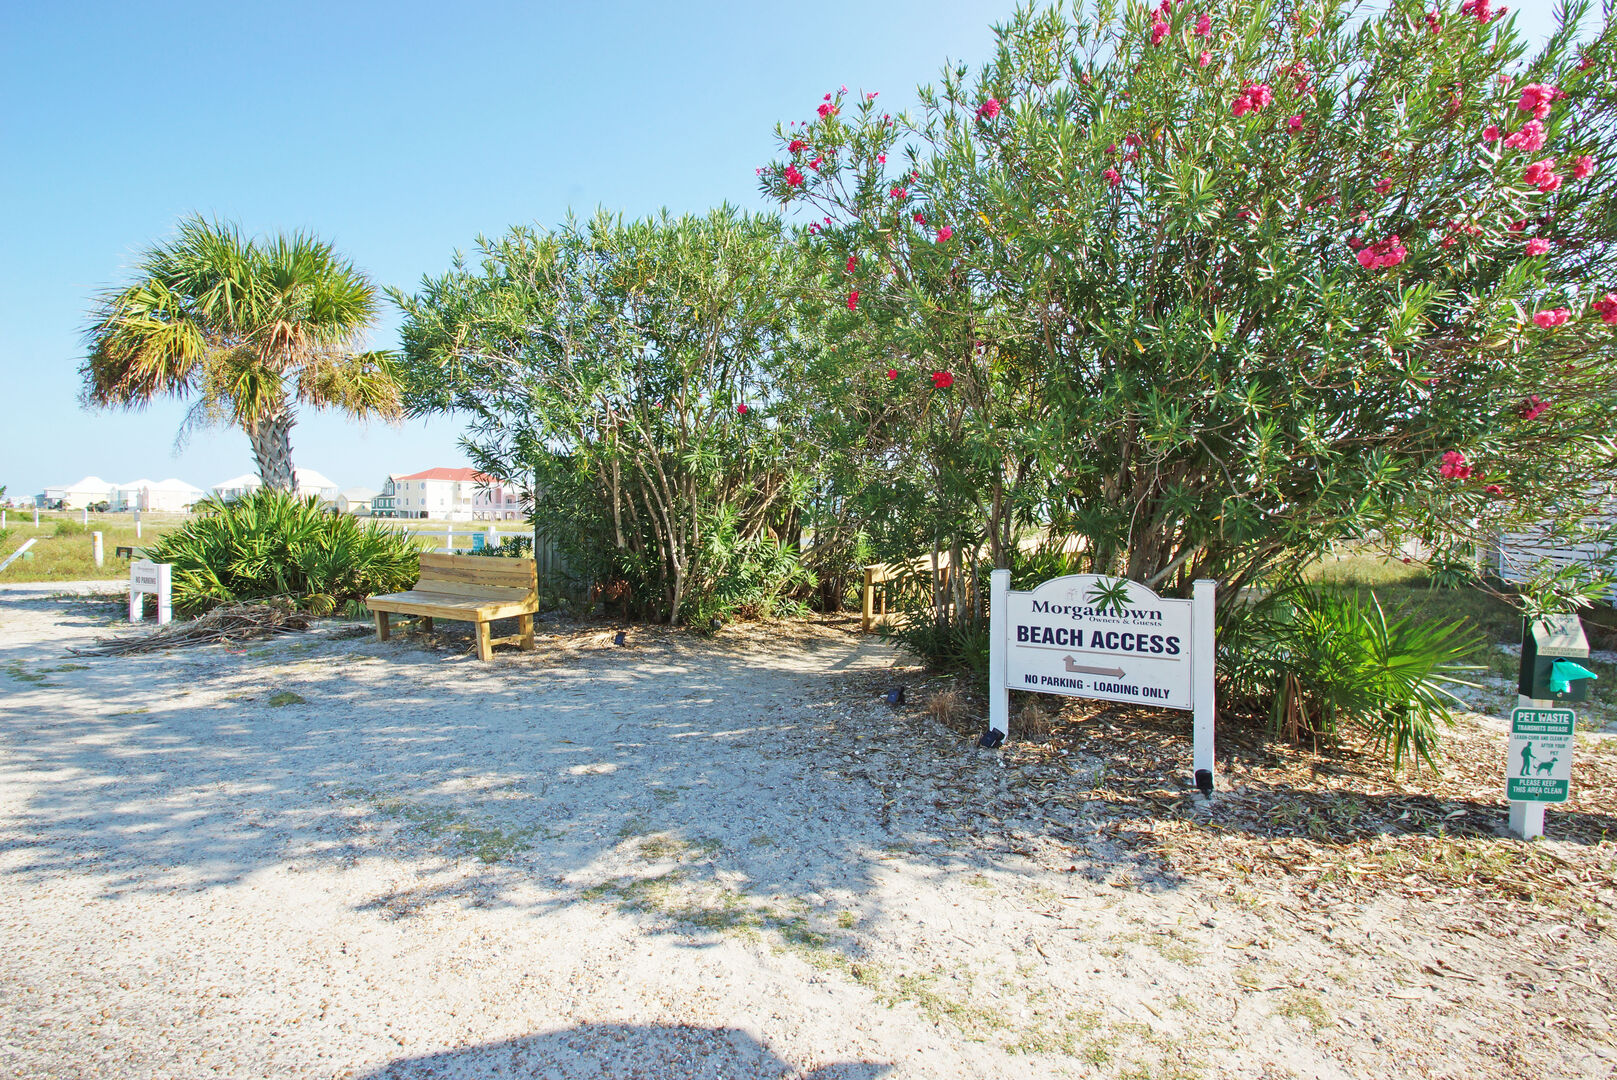 Picture of the Beach Access Sign, a Bench, and Ornamental Plants.